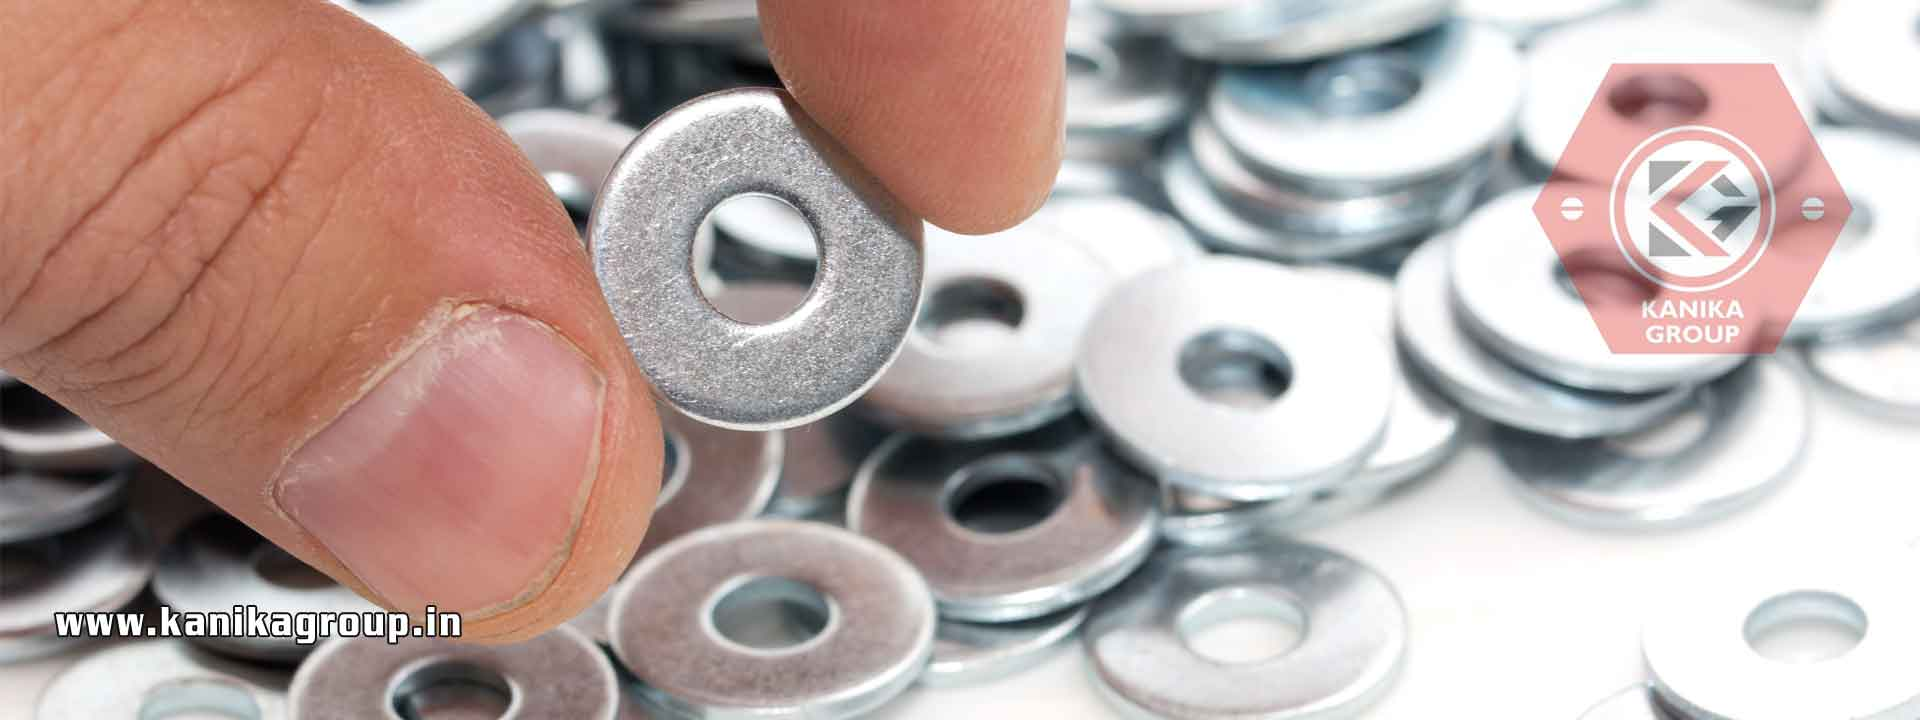 Plain Washers Flat Washers Dome Washers manufacturers exporters suppliers in India